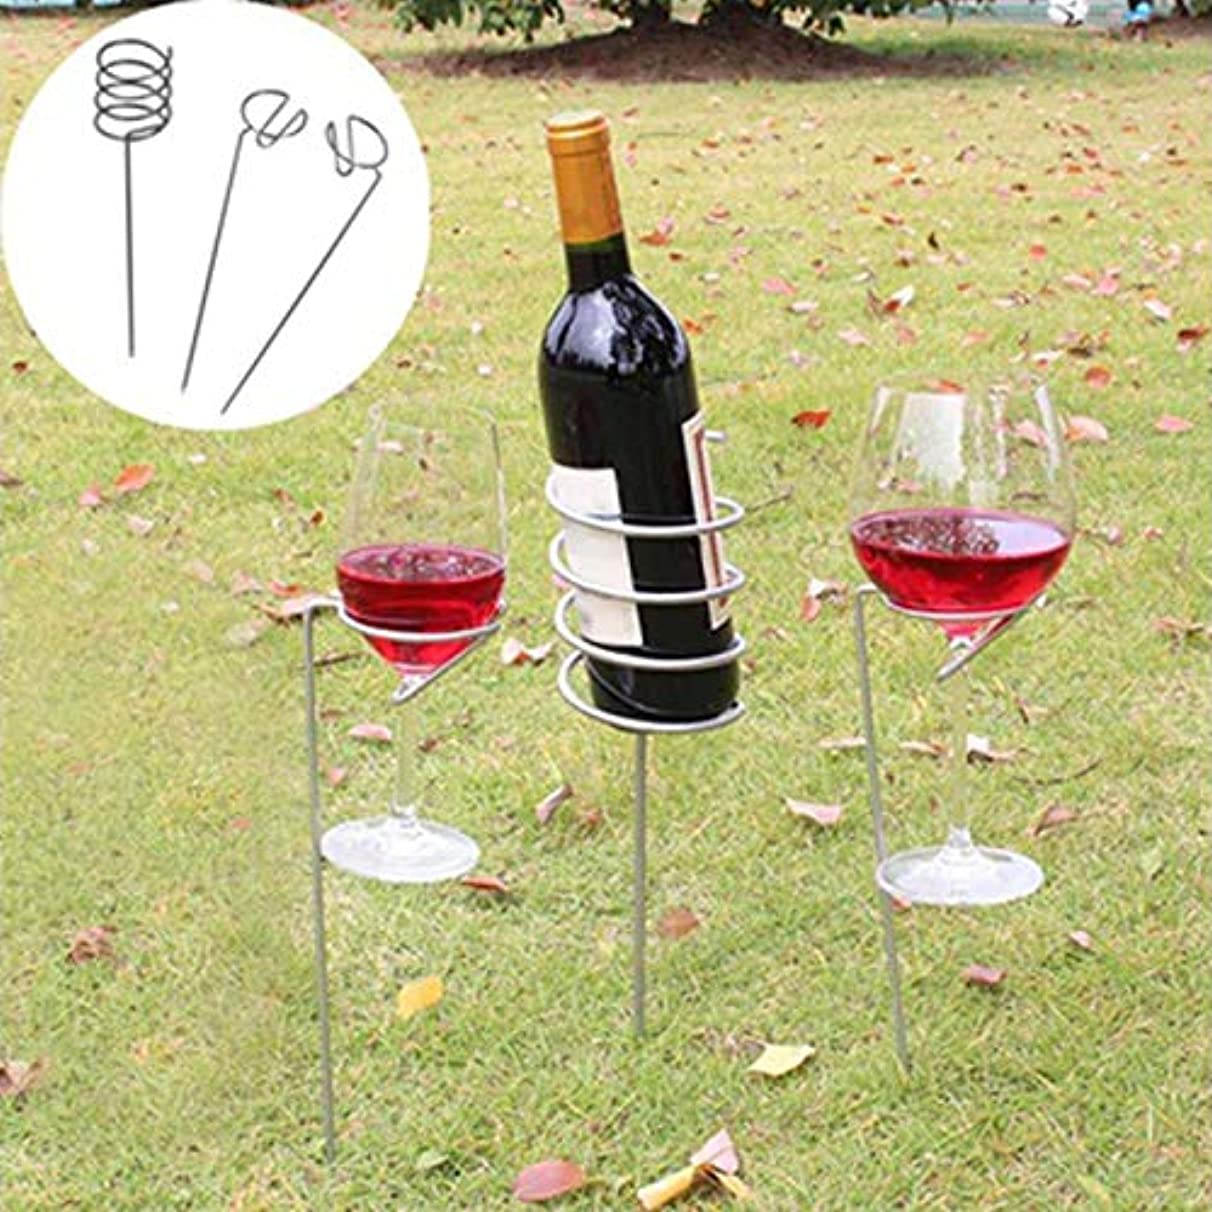 Glass Clamp - 3pcs Set Outdoor Wine Glass Bottle Holder Stake Picnic Camping Stakes Rack Home Bar Cup Shelf - Package Doll Black Holder Sticks Travel Screw Bucket Brushed Garden Vertical Cov